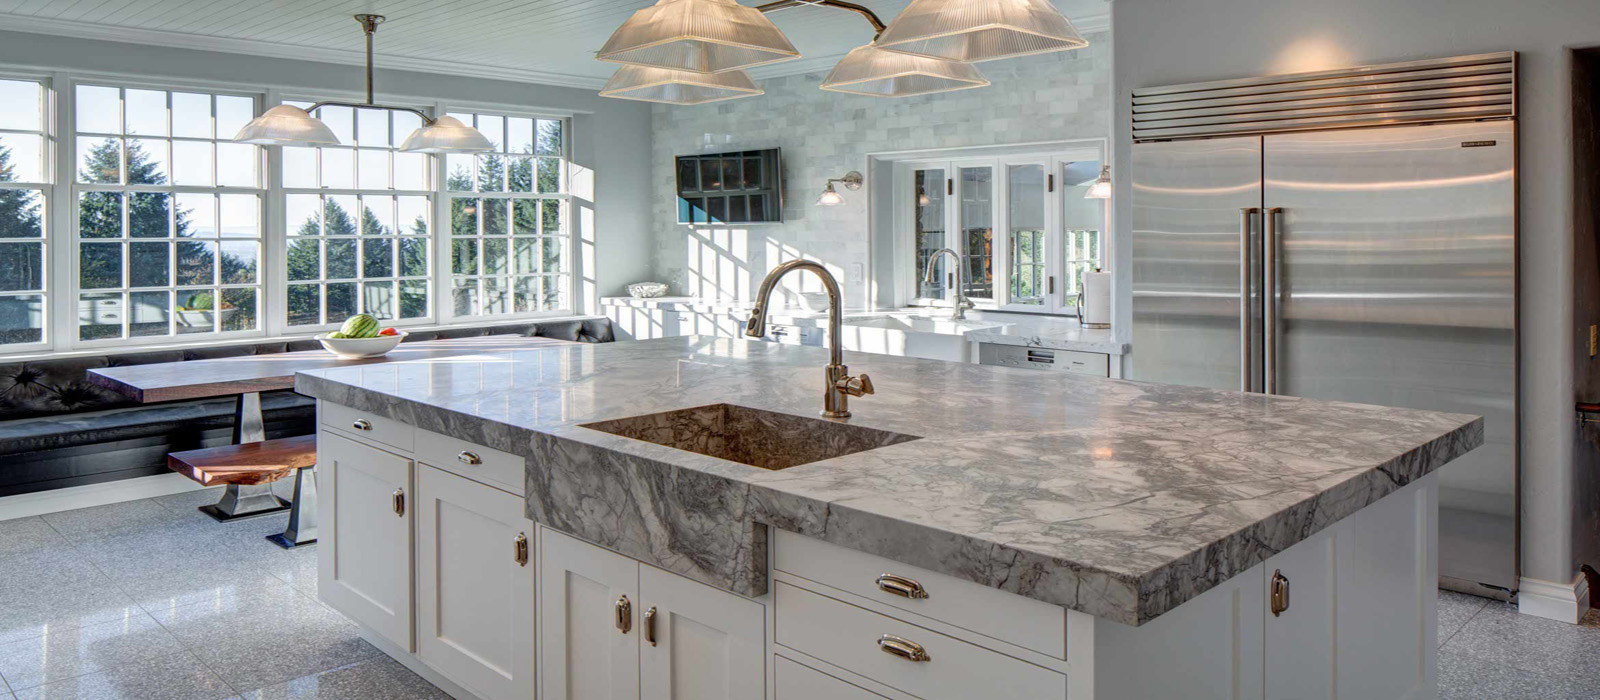 Top Granite Kitchen Platforms And Modern Countertop